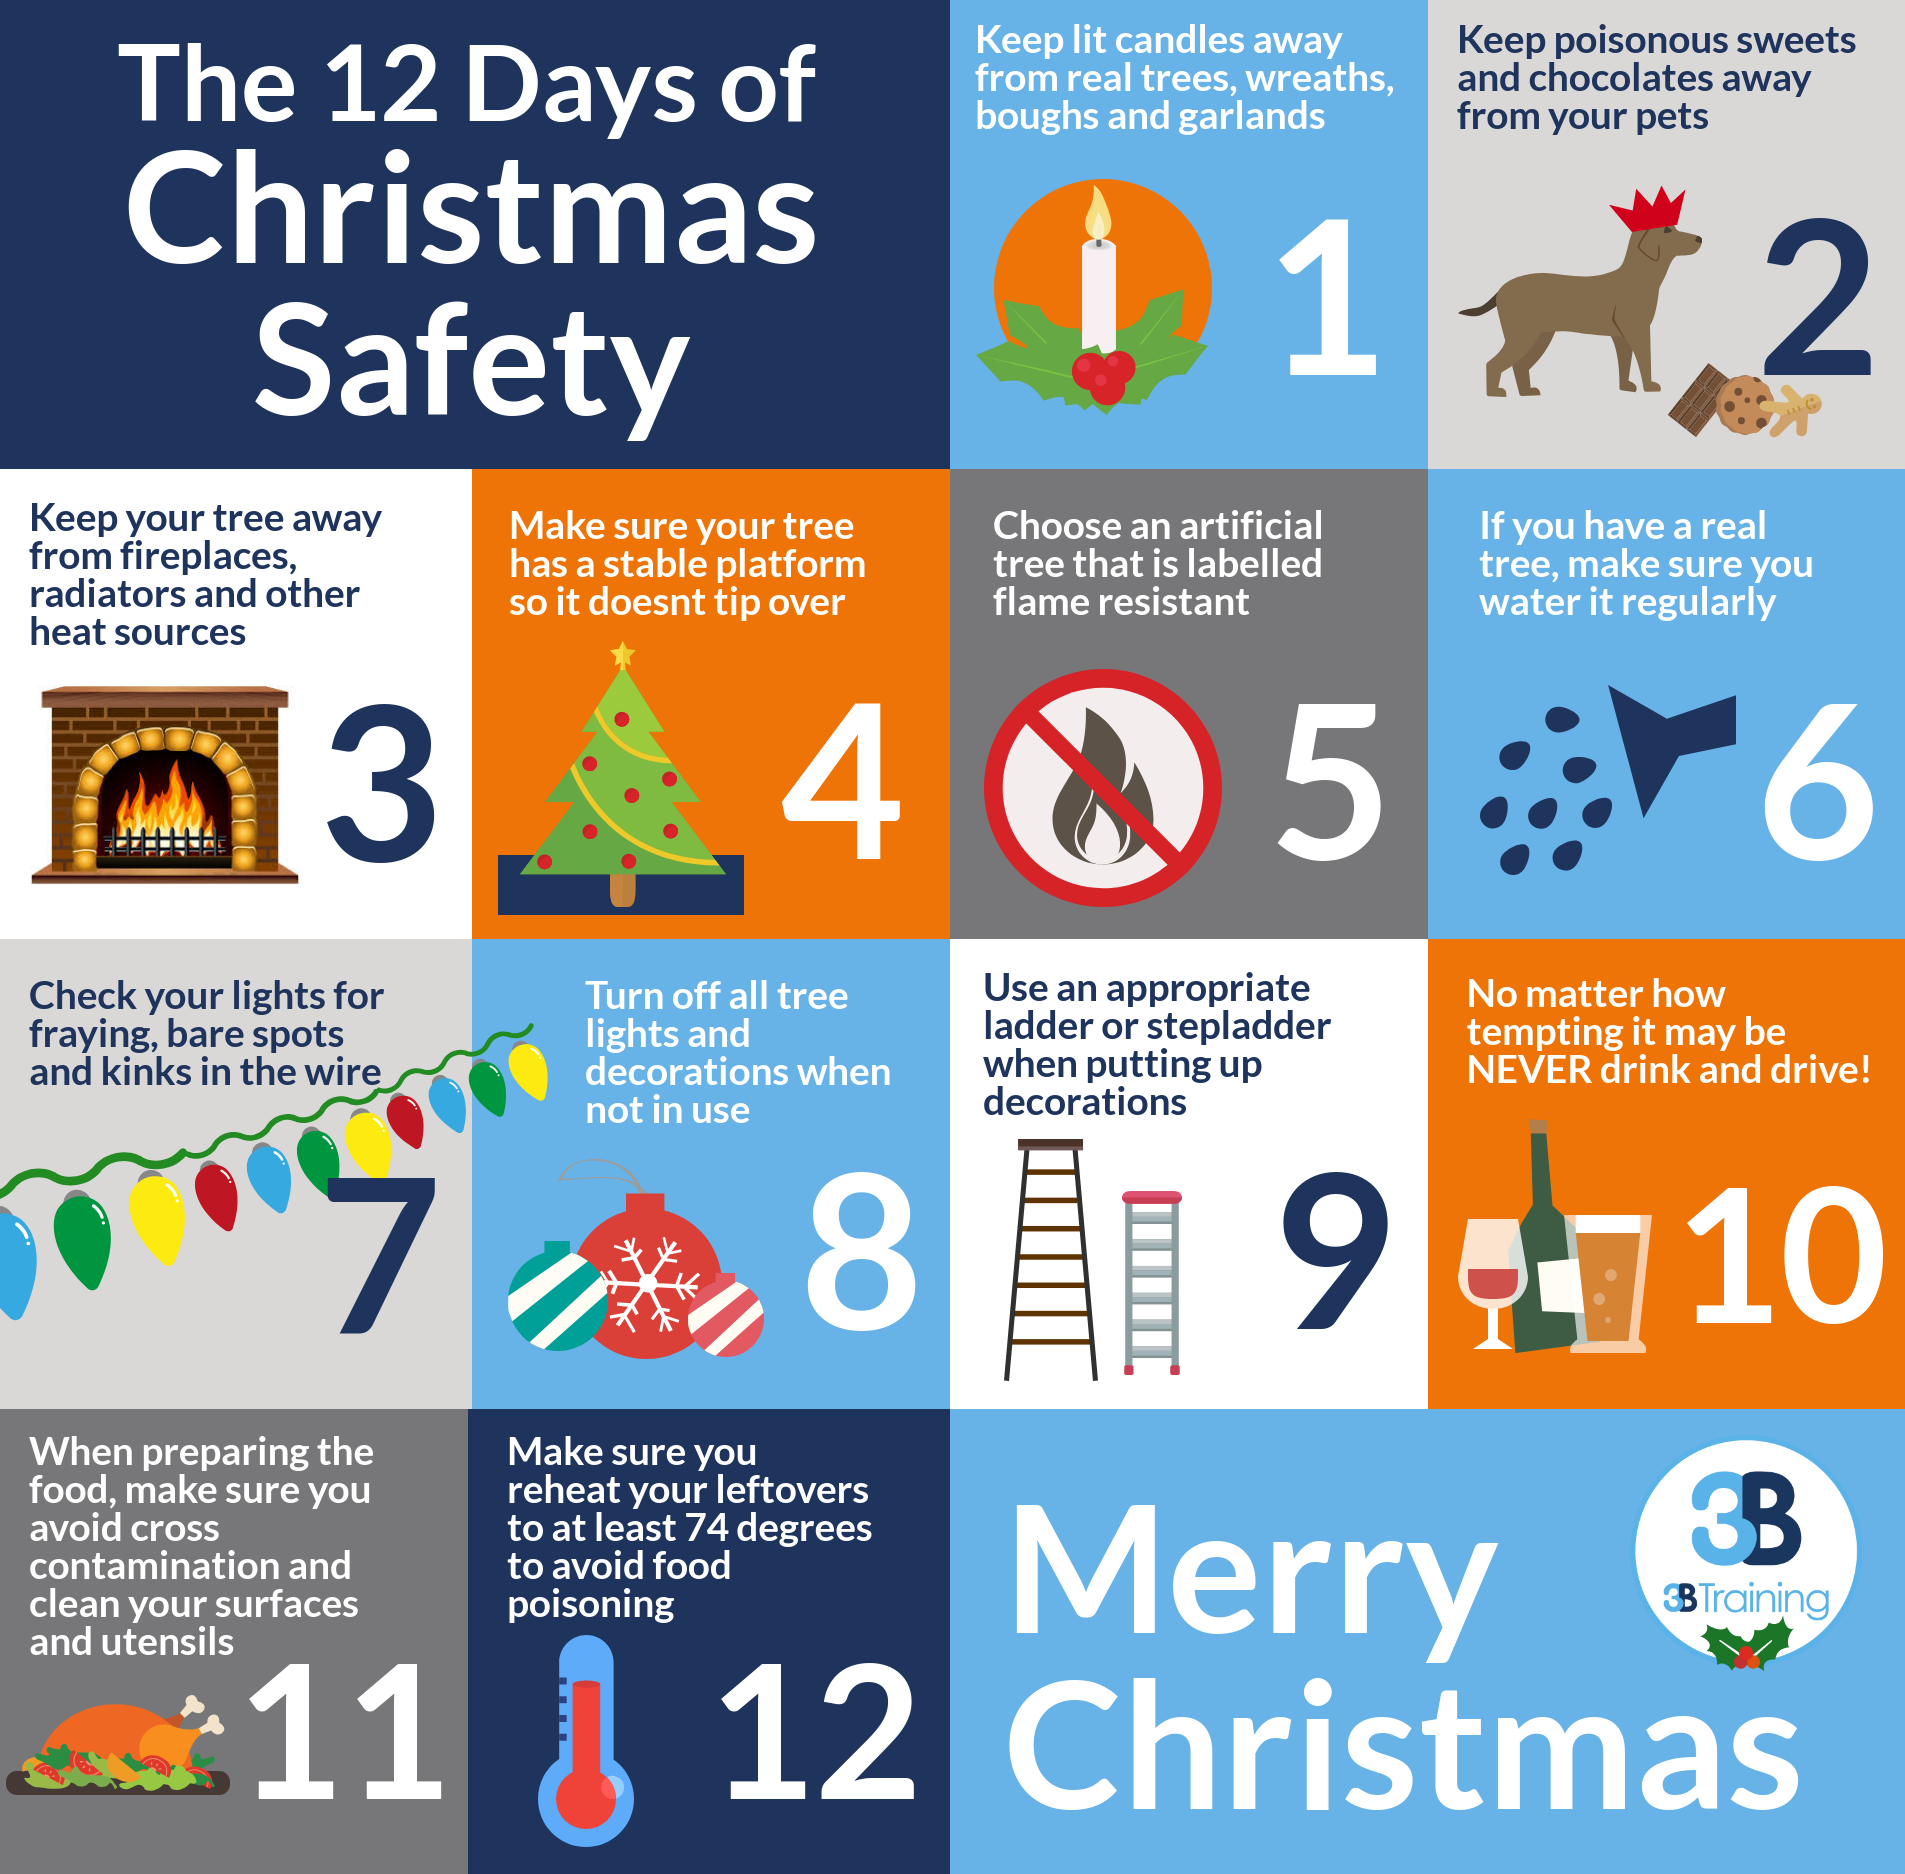 12 Days of Christmas Safety